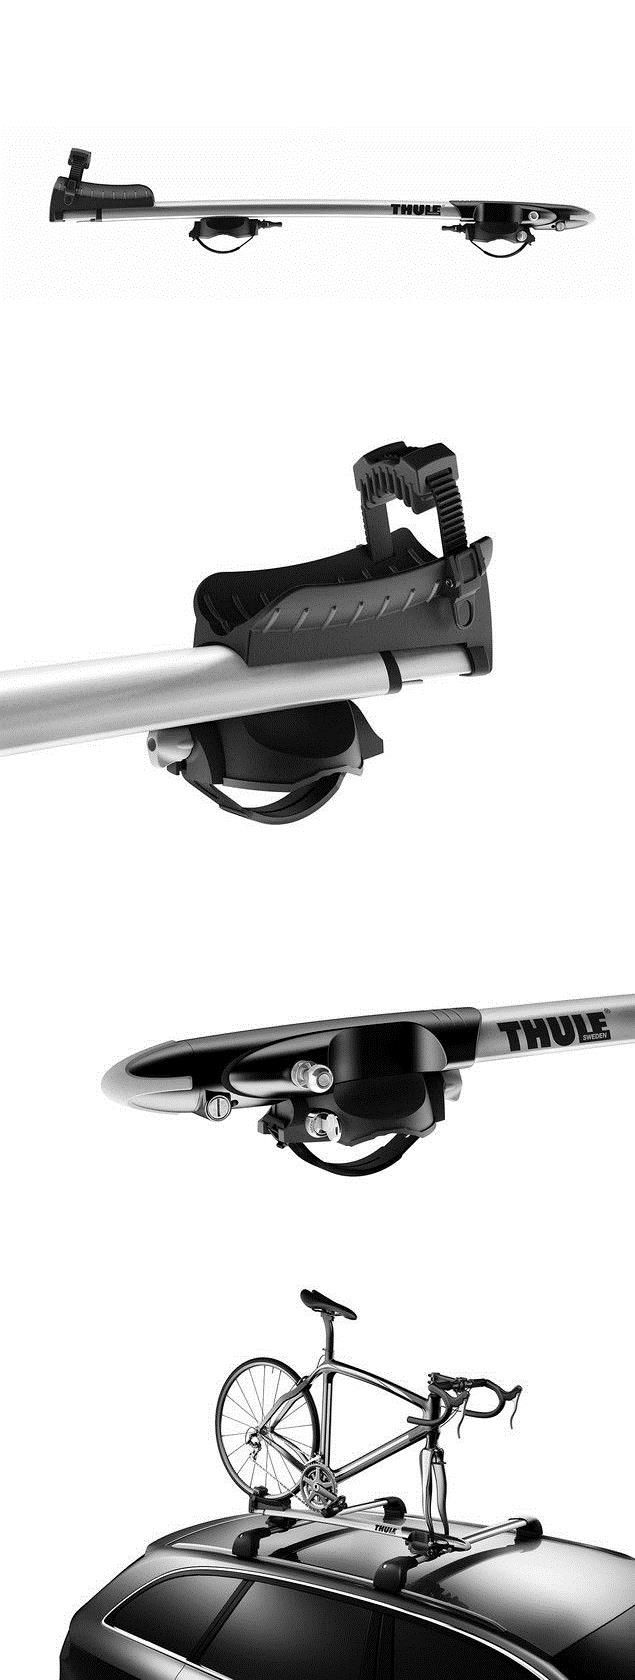 17 Best Ideas About Thule Roof Rack On Pinterest